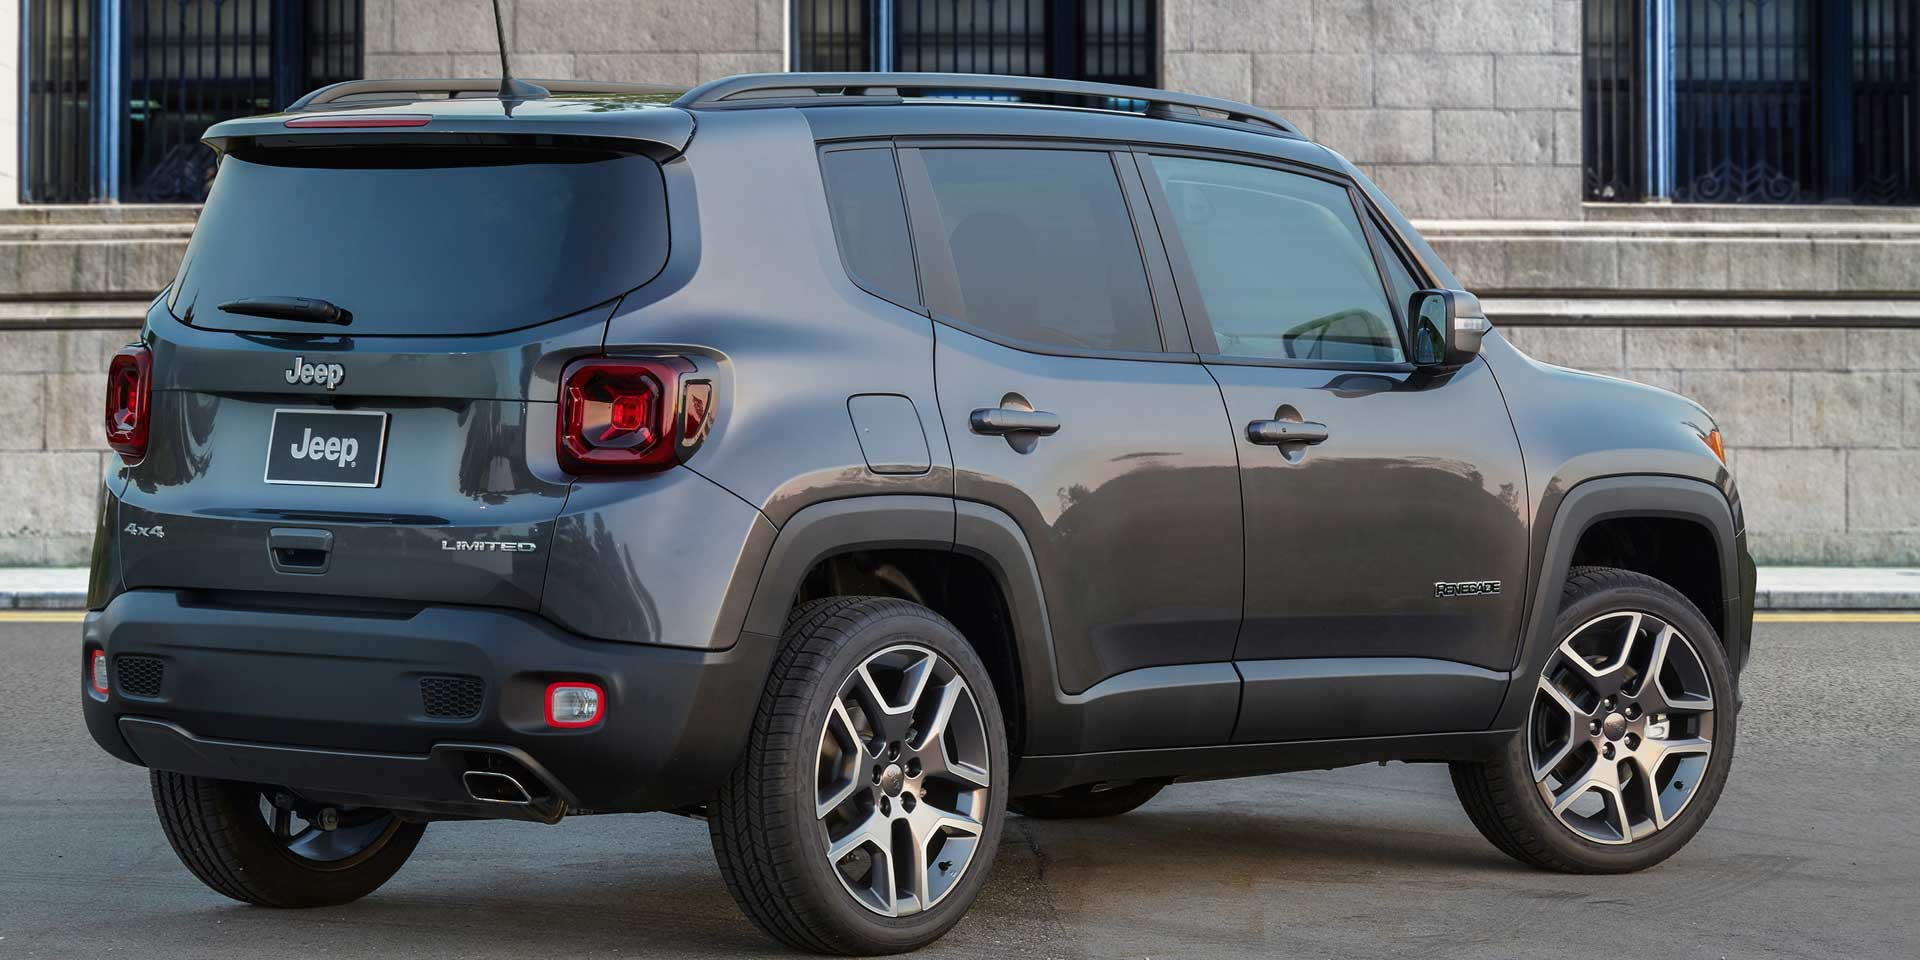 2019 jeep renegade vehicles on display chicago auto show. Black Bedroom Furniture Sets. Home Design Ideas